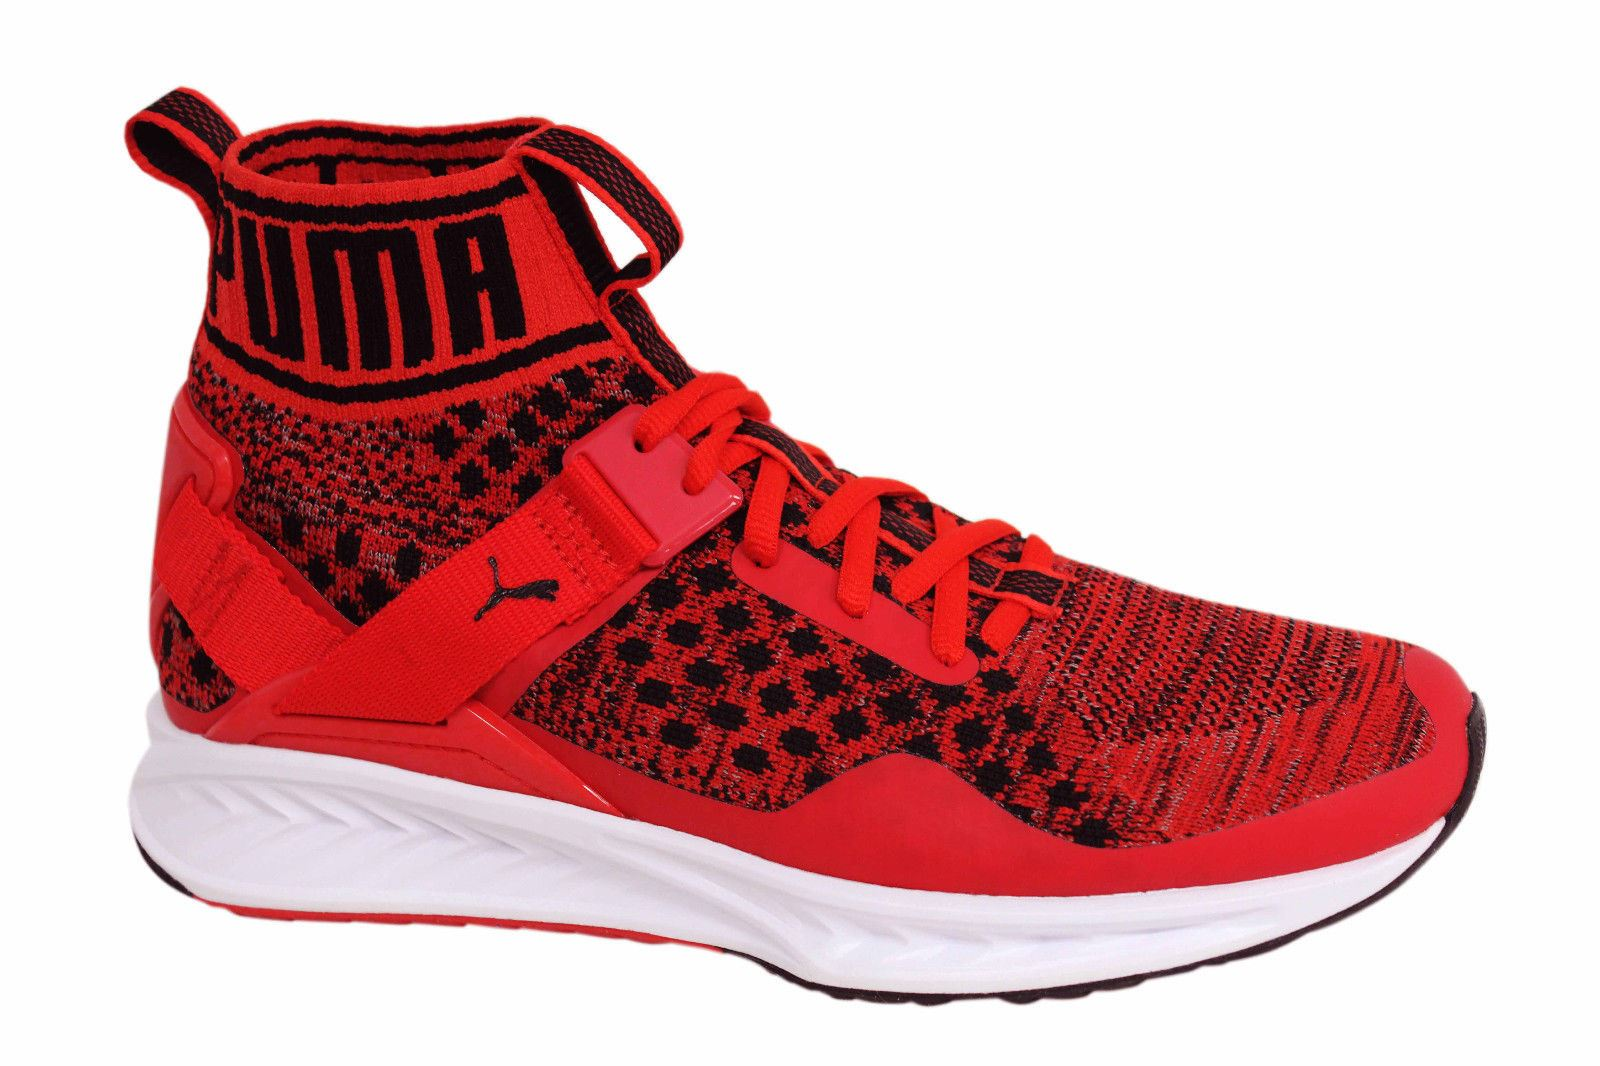 best service 92180 e15e2 Details about Puma Ignite evoKNIT Lace Up Red Mens Mid Shoes Trainers  189697 02 U94